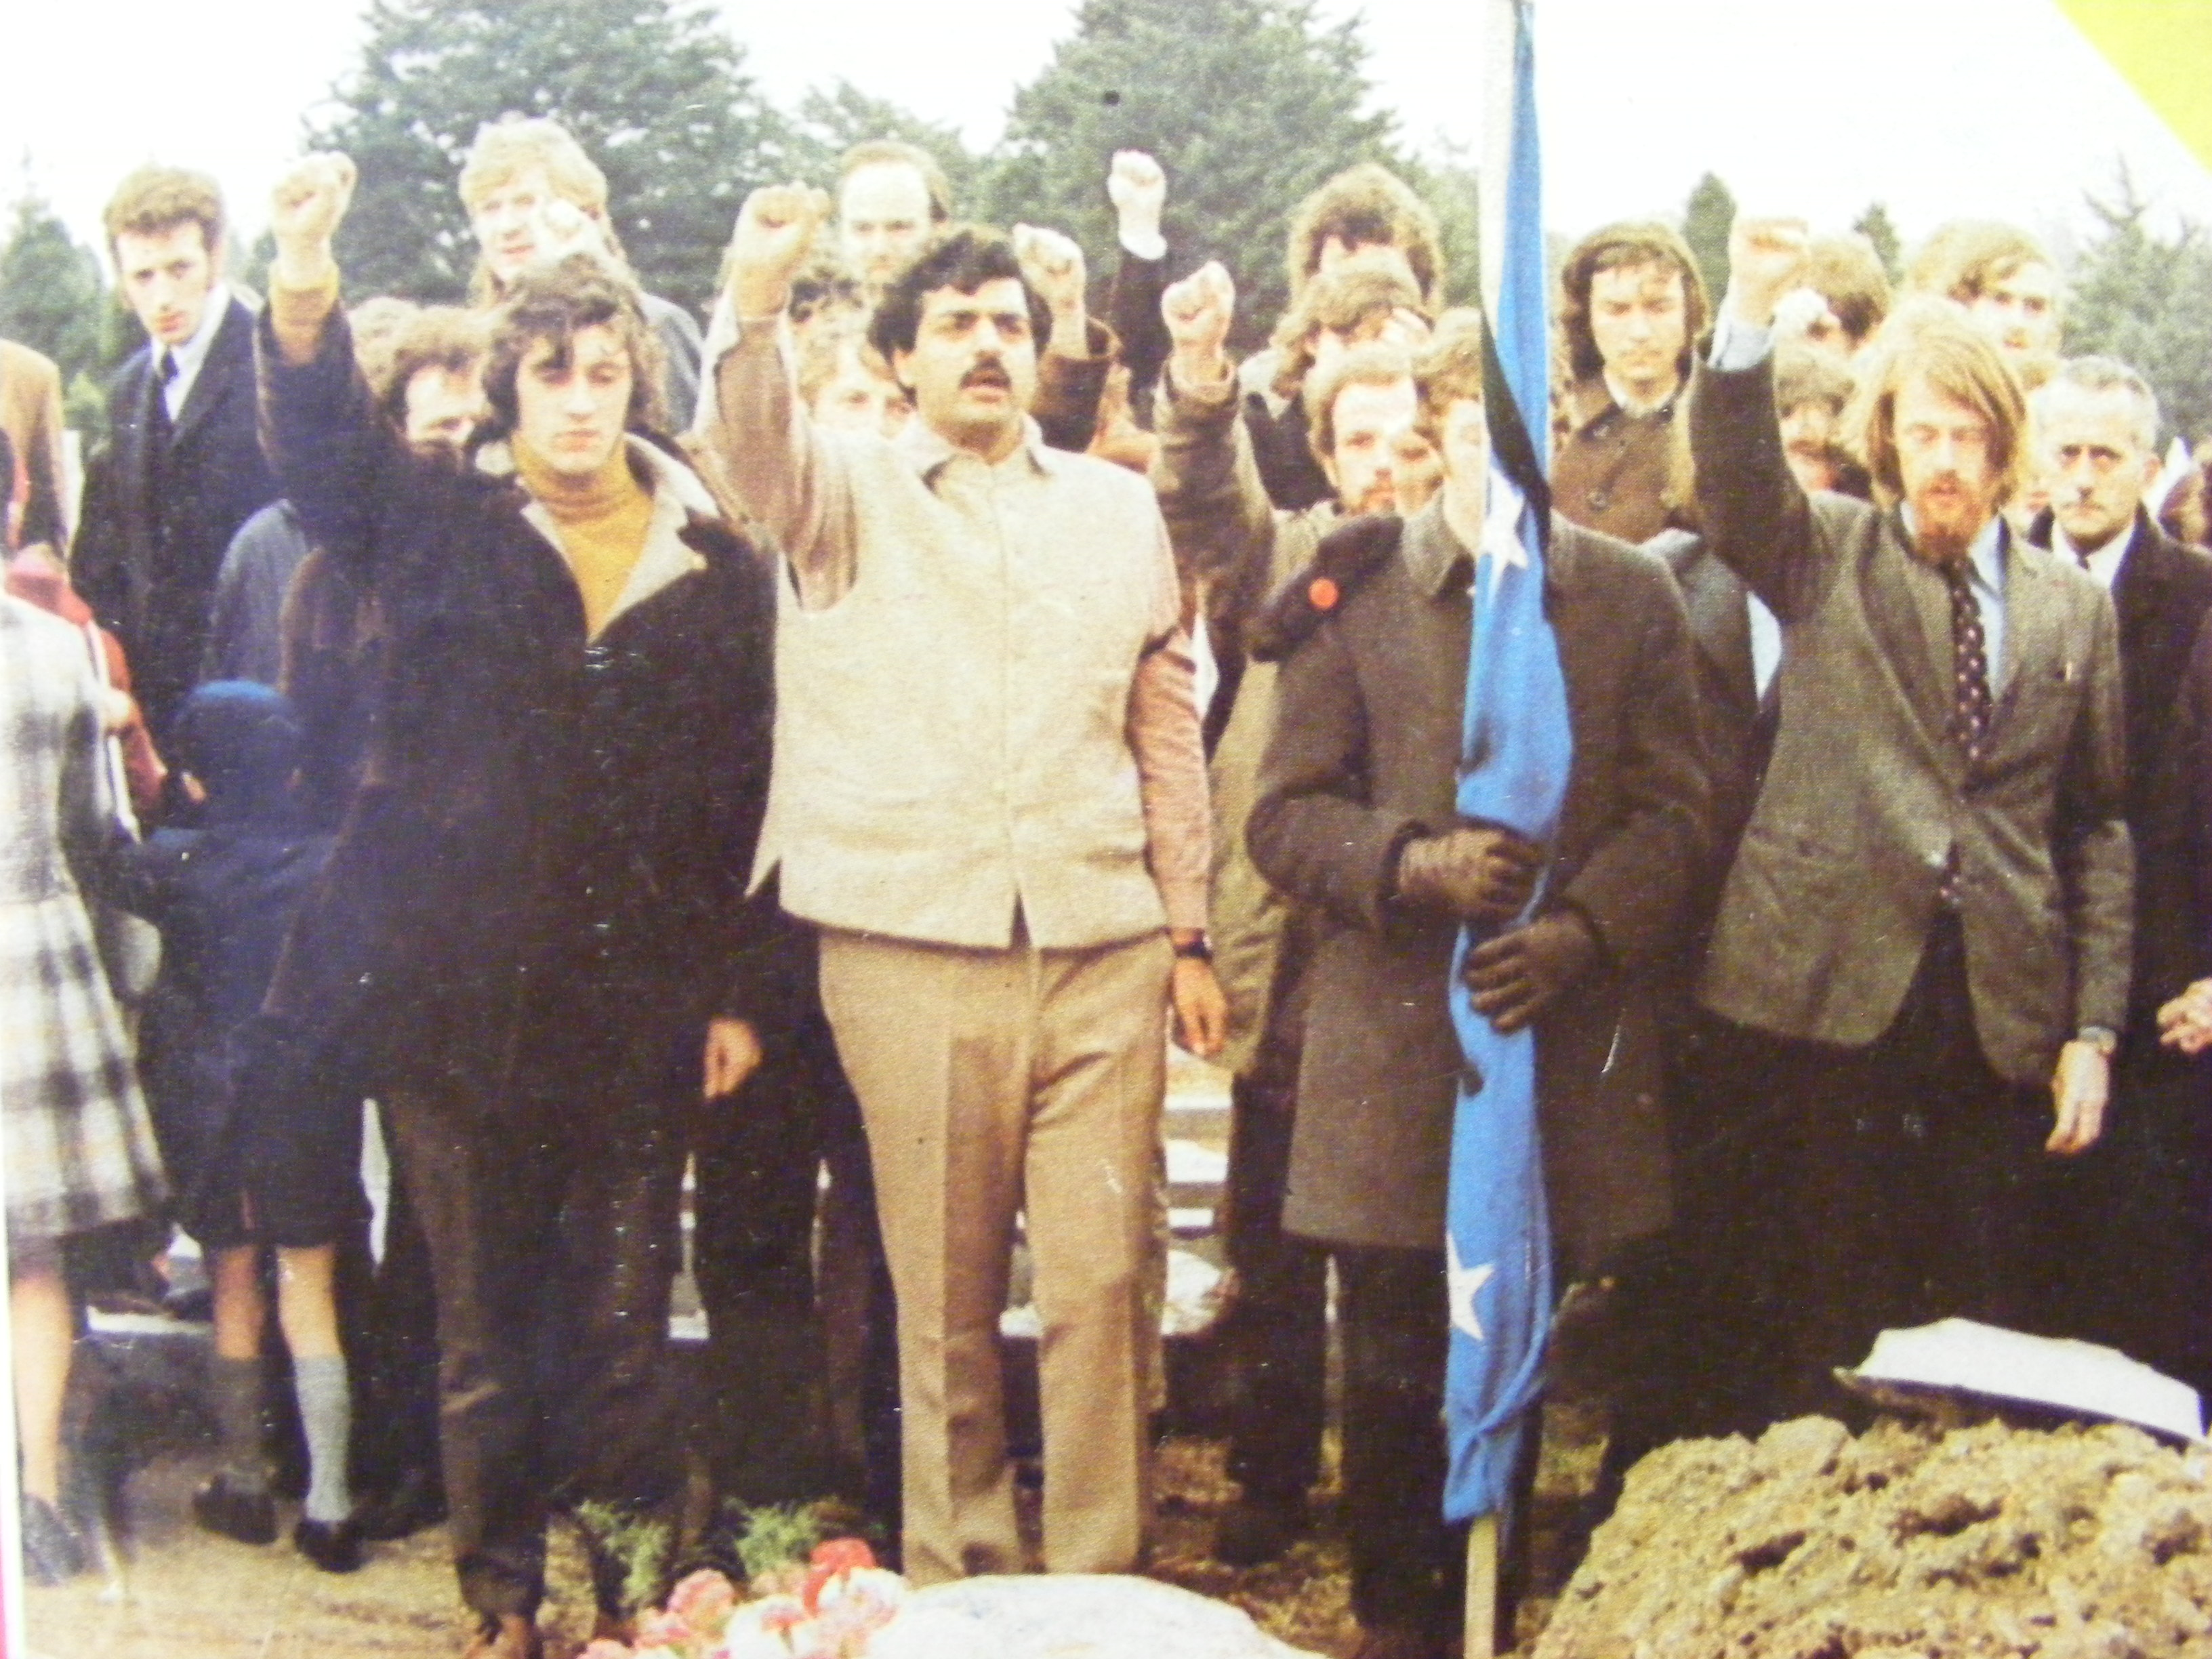 Charlie Bird and Tariq Ali giving a clenched fist salute at the graveside of assassinated Saor Éire leader, Peter Graham